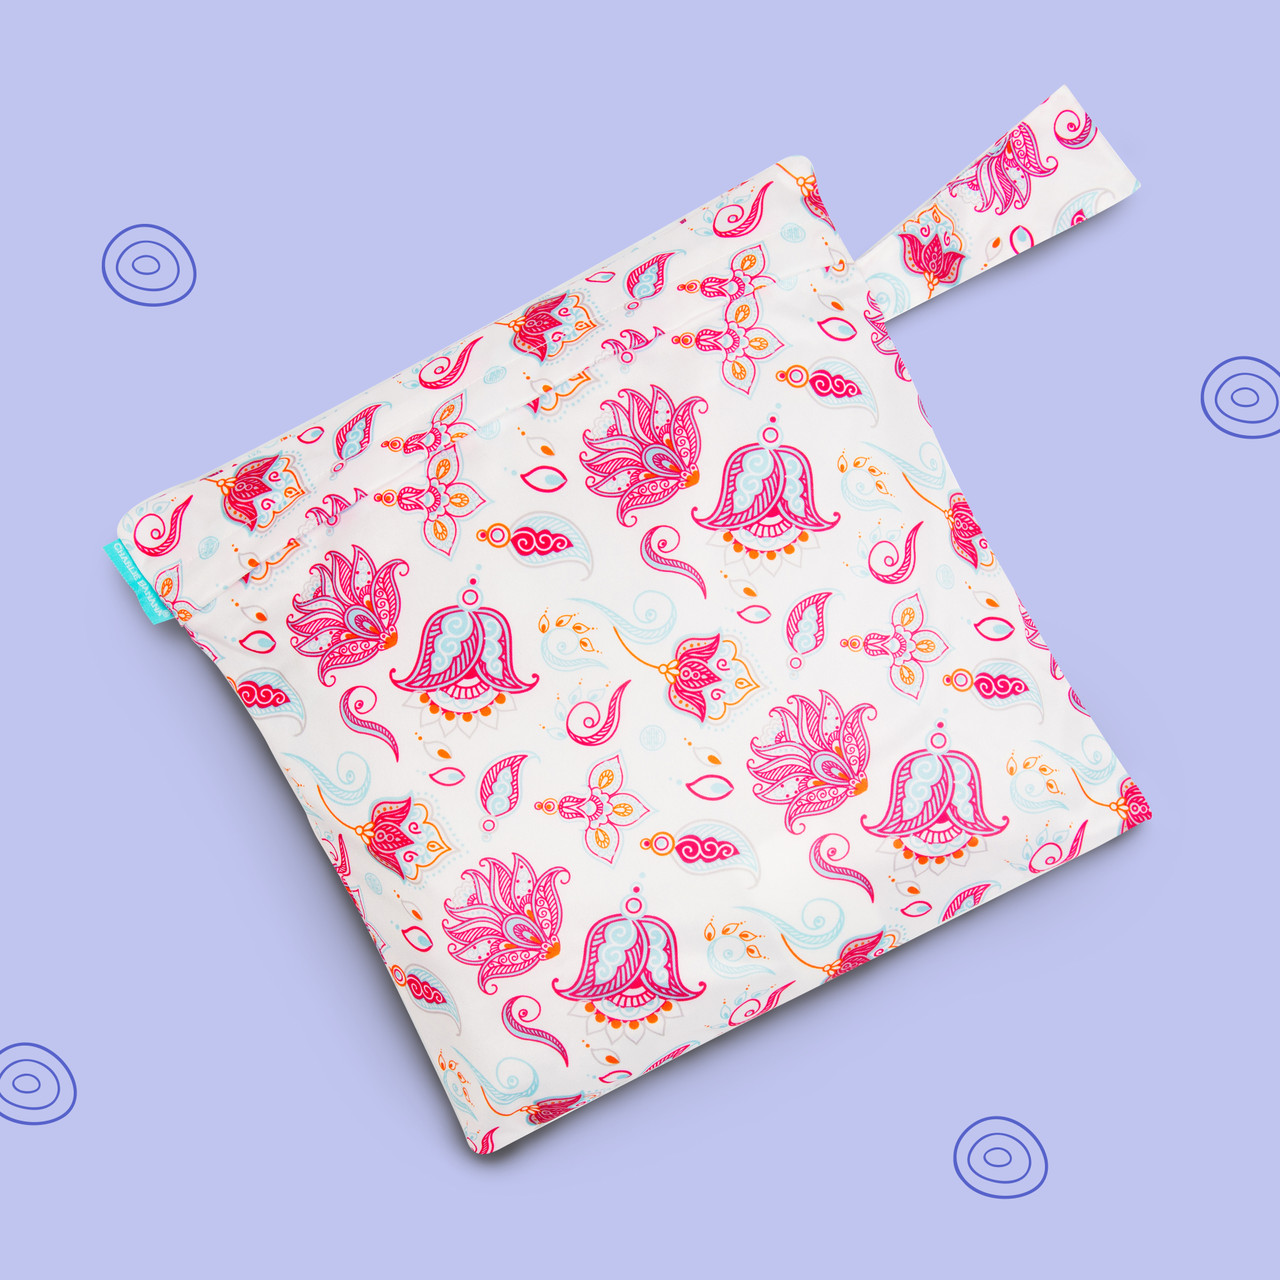 On-the-go Tote Bag - Cotton Bliss